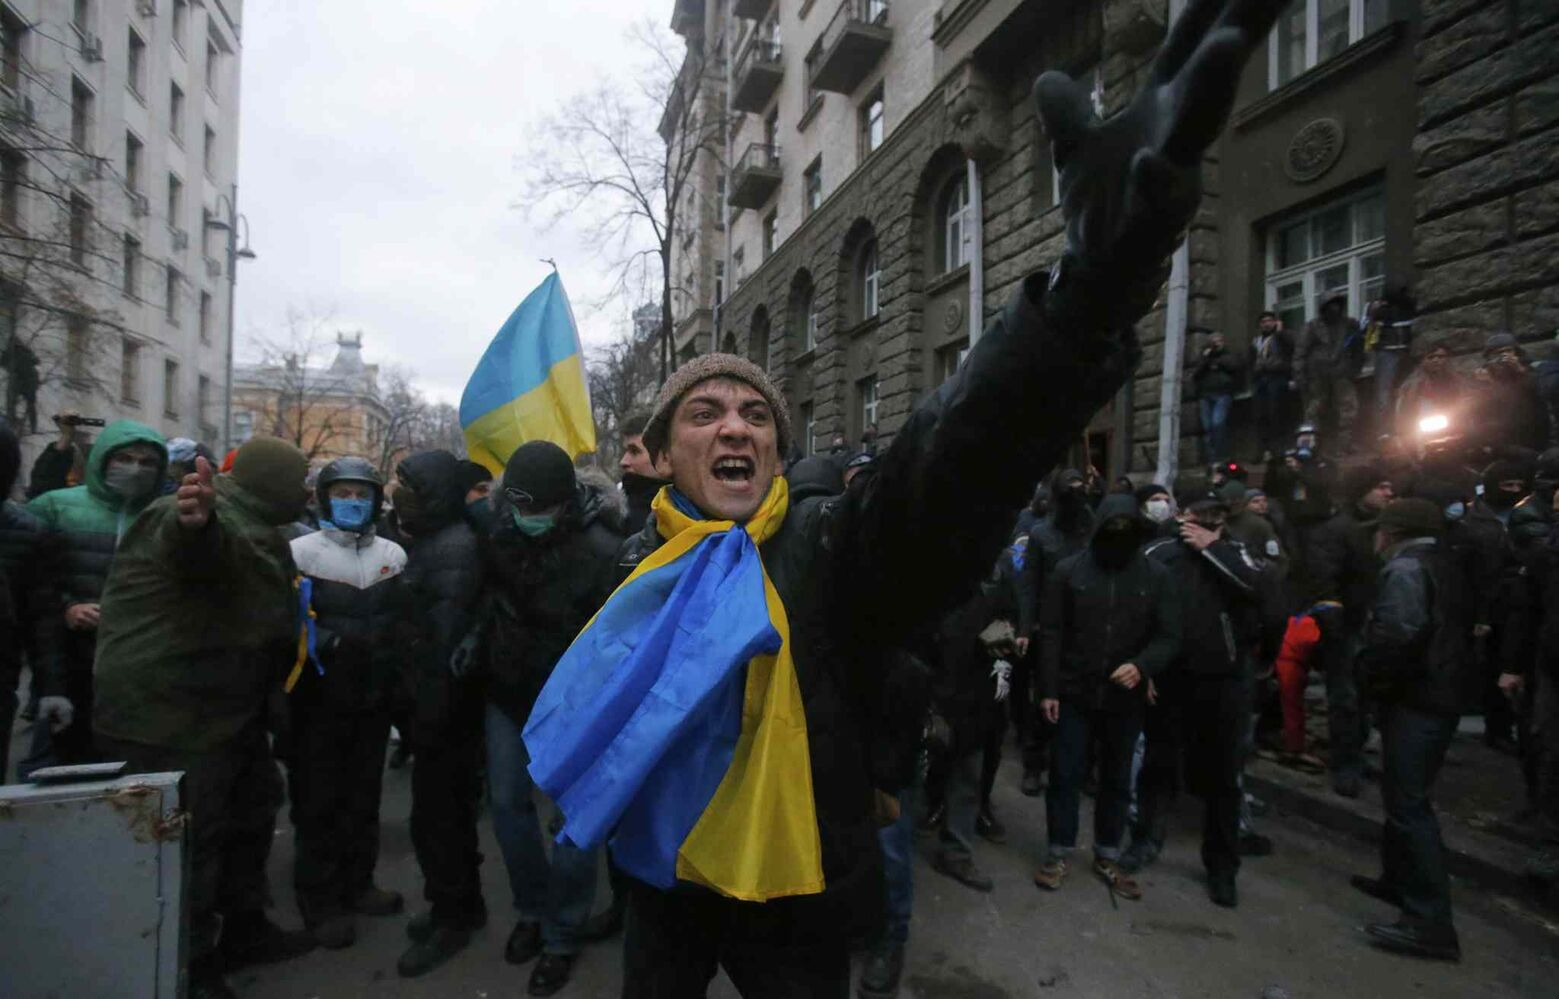 Protesters shout as they clash with police outside of the presidential administration building in downtown Kiev, Ukraine, on Sunday. More than 100,000 demonstrators chased away police to rally in the center of Ukraine's capital on Sunday.  (Sergei Grits / The Associated Press)